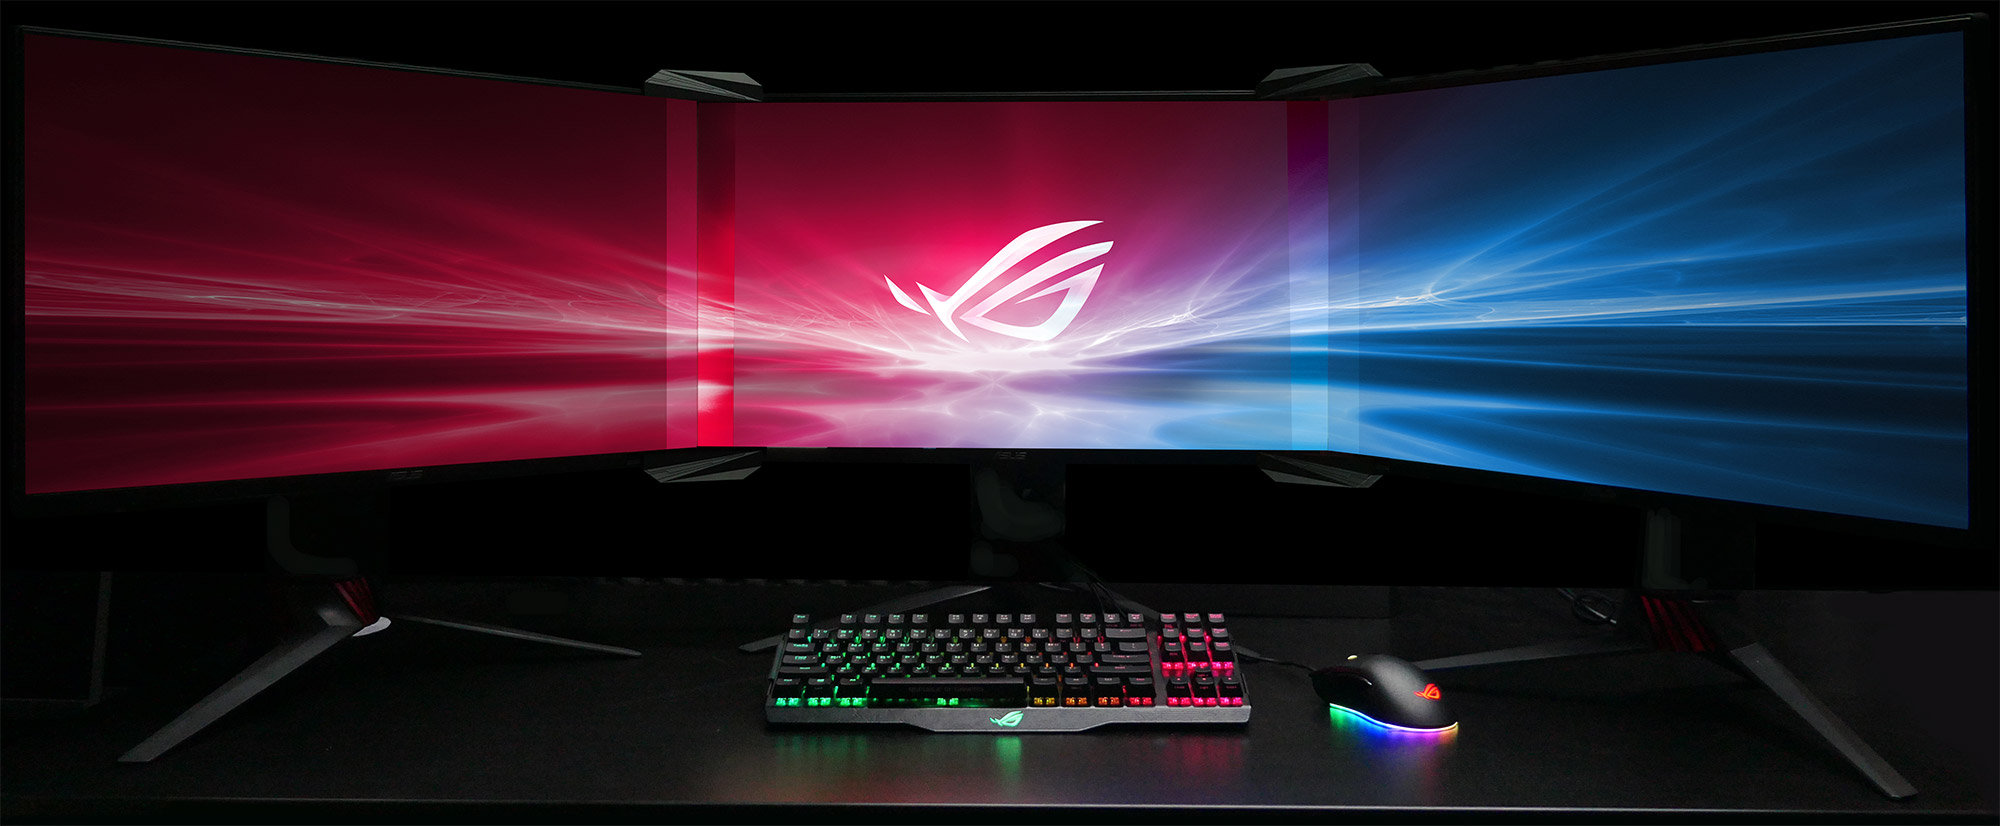 Asus makes the Multi-Monitor bezel disappear